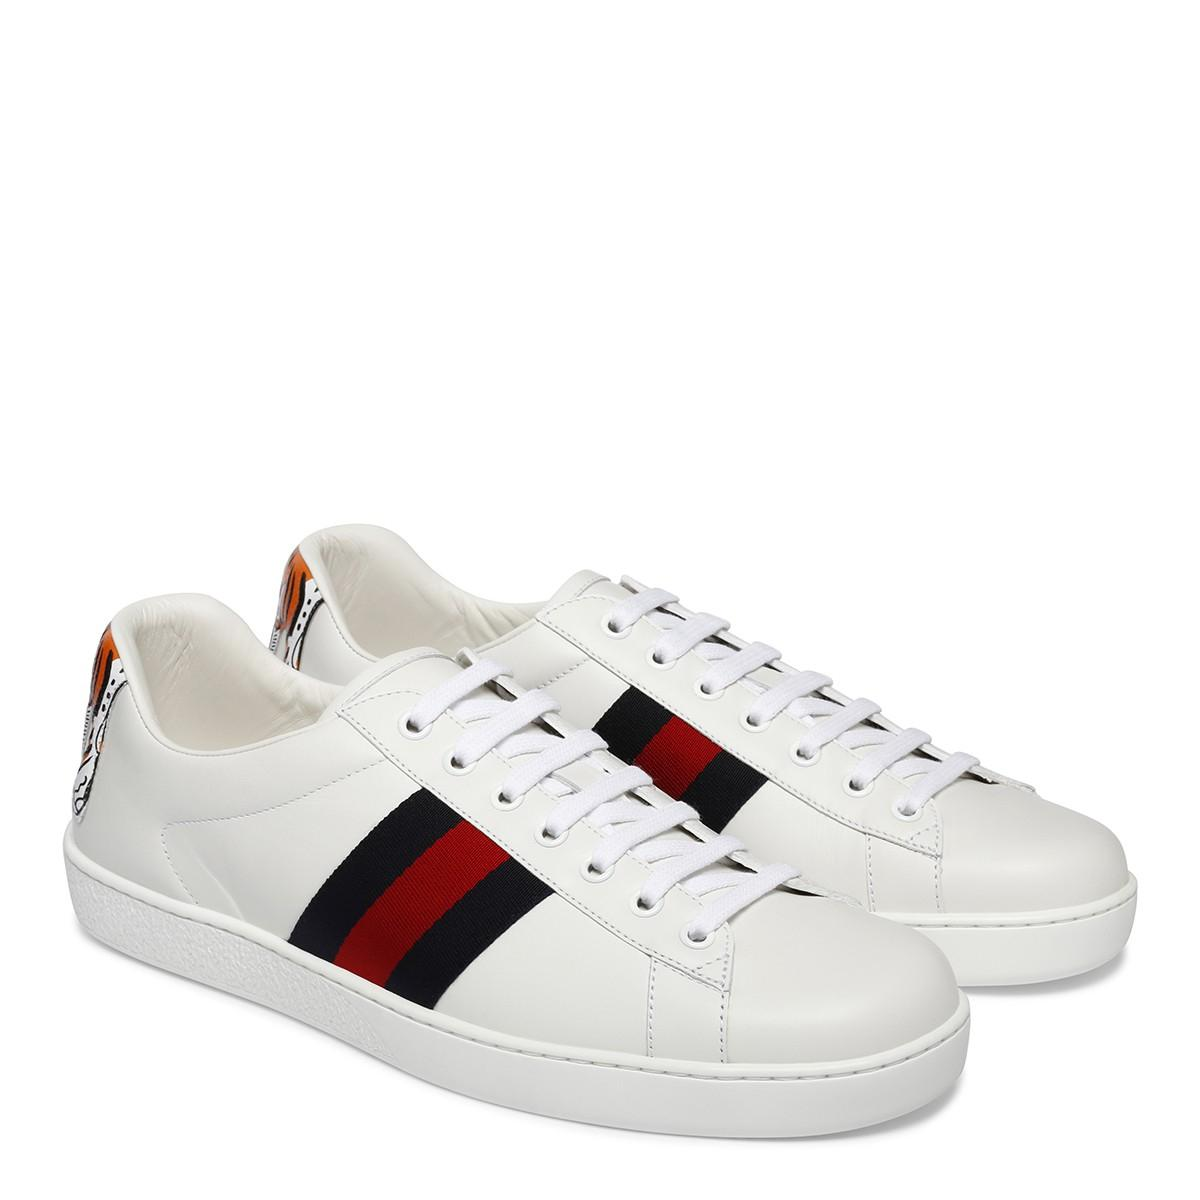 gucci shoes white. gucci white athletic shoes b